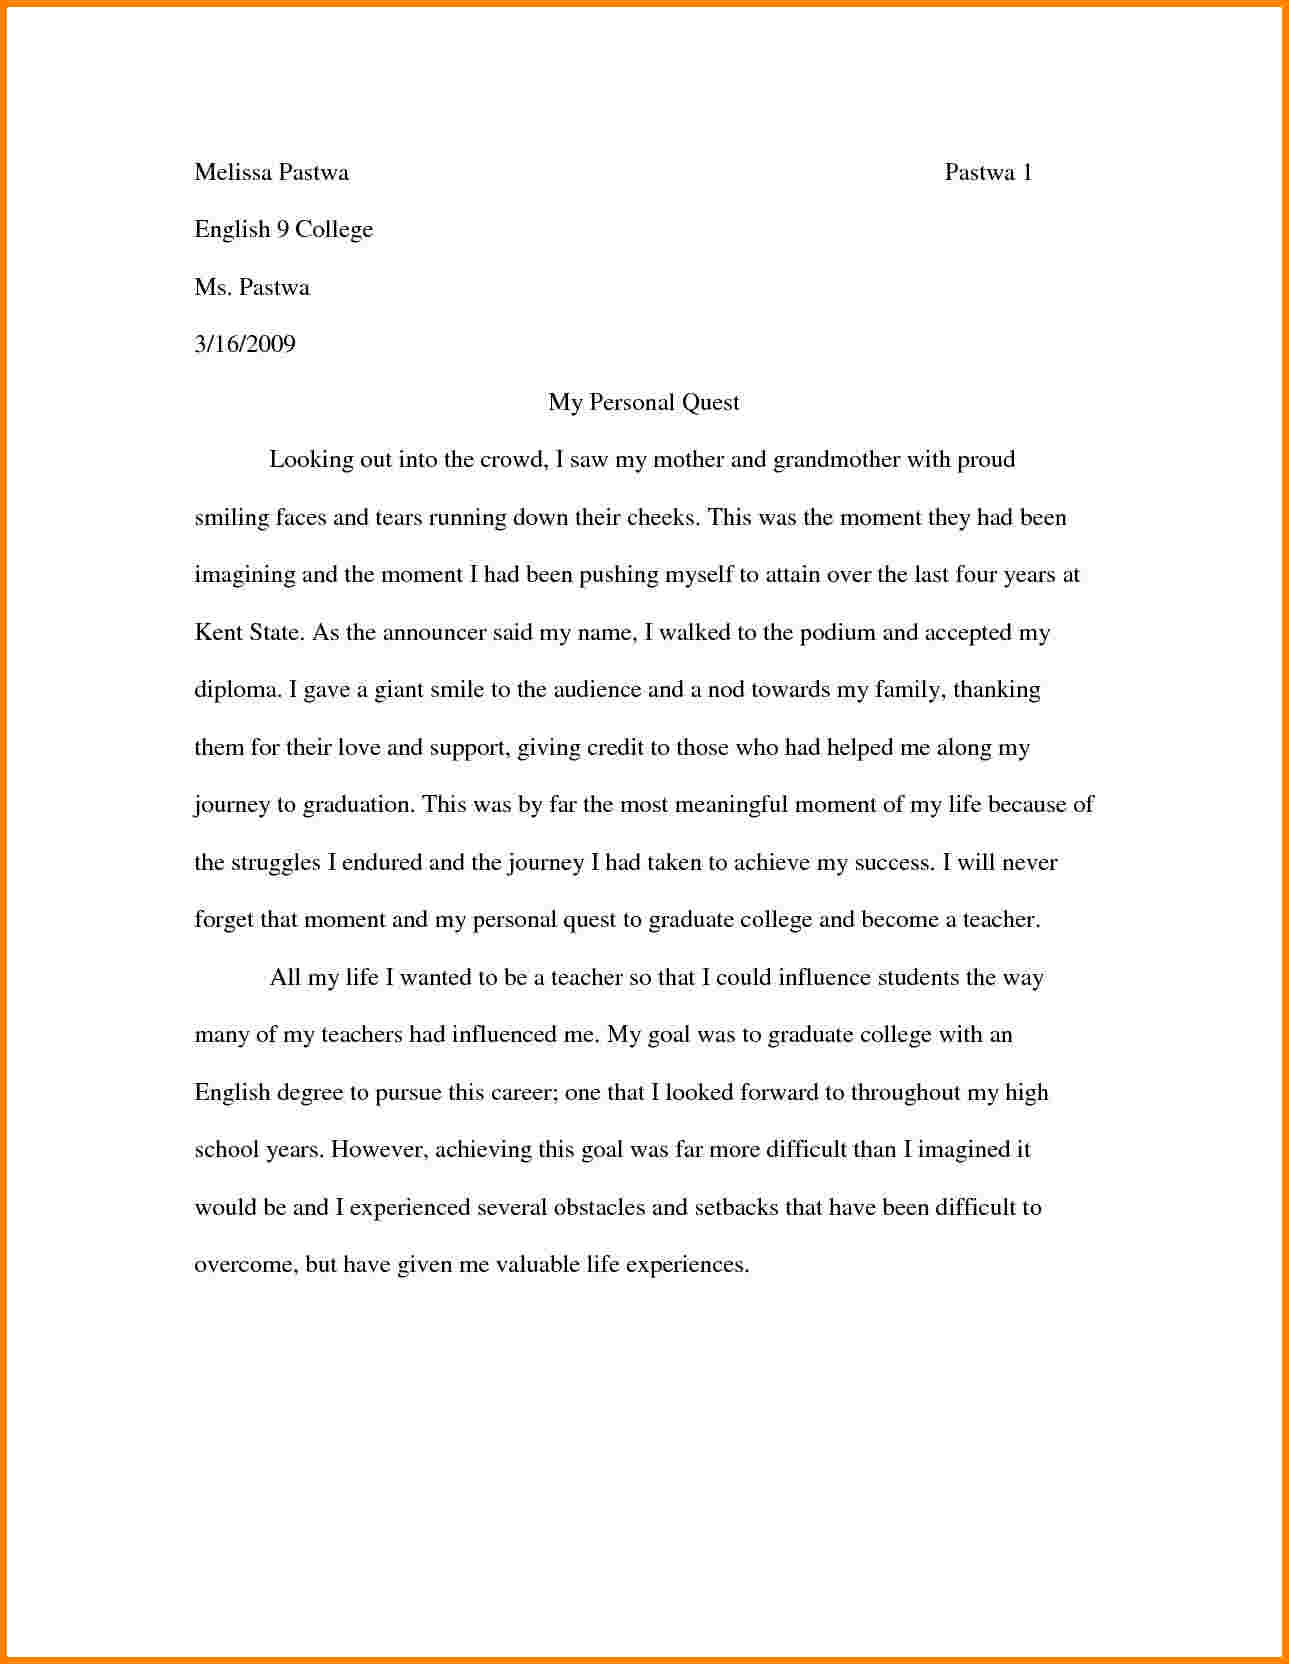 Hamlet Essay Thesis  Fifth Business Essays also Examples Of Thesis Statements For Persuasive Essays  How To Write Research Paper Introduction Pdf Philosophy  Mental Health Essay